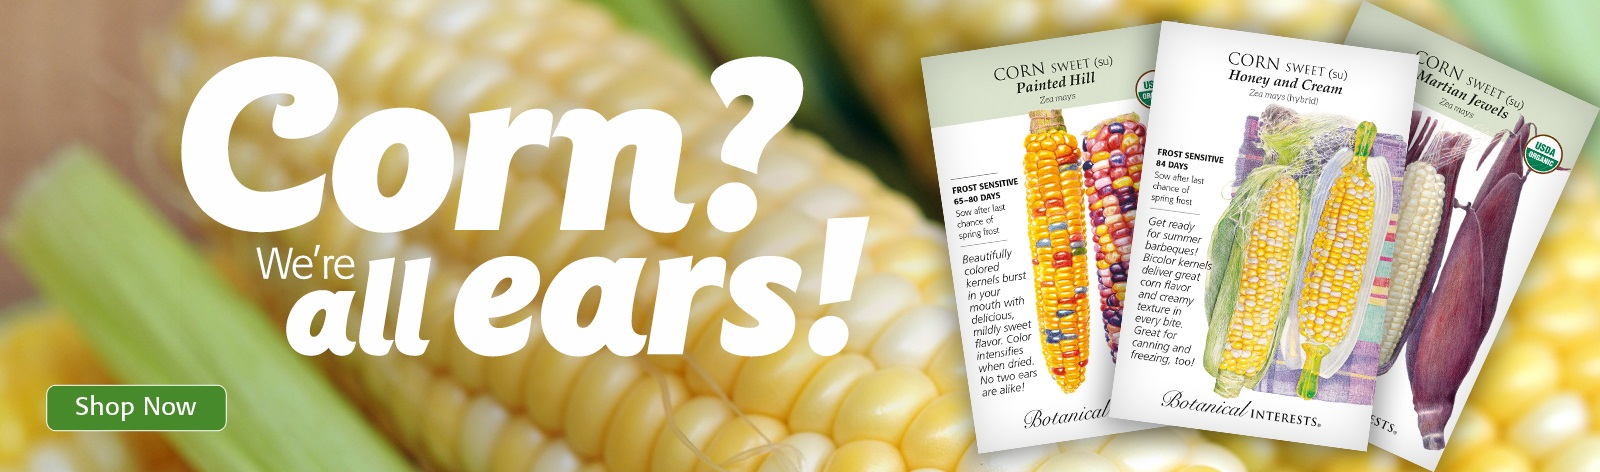 Corn? We are all ears!